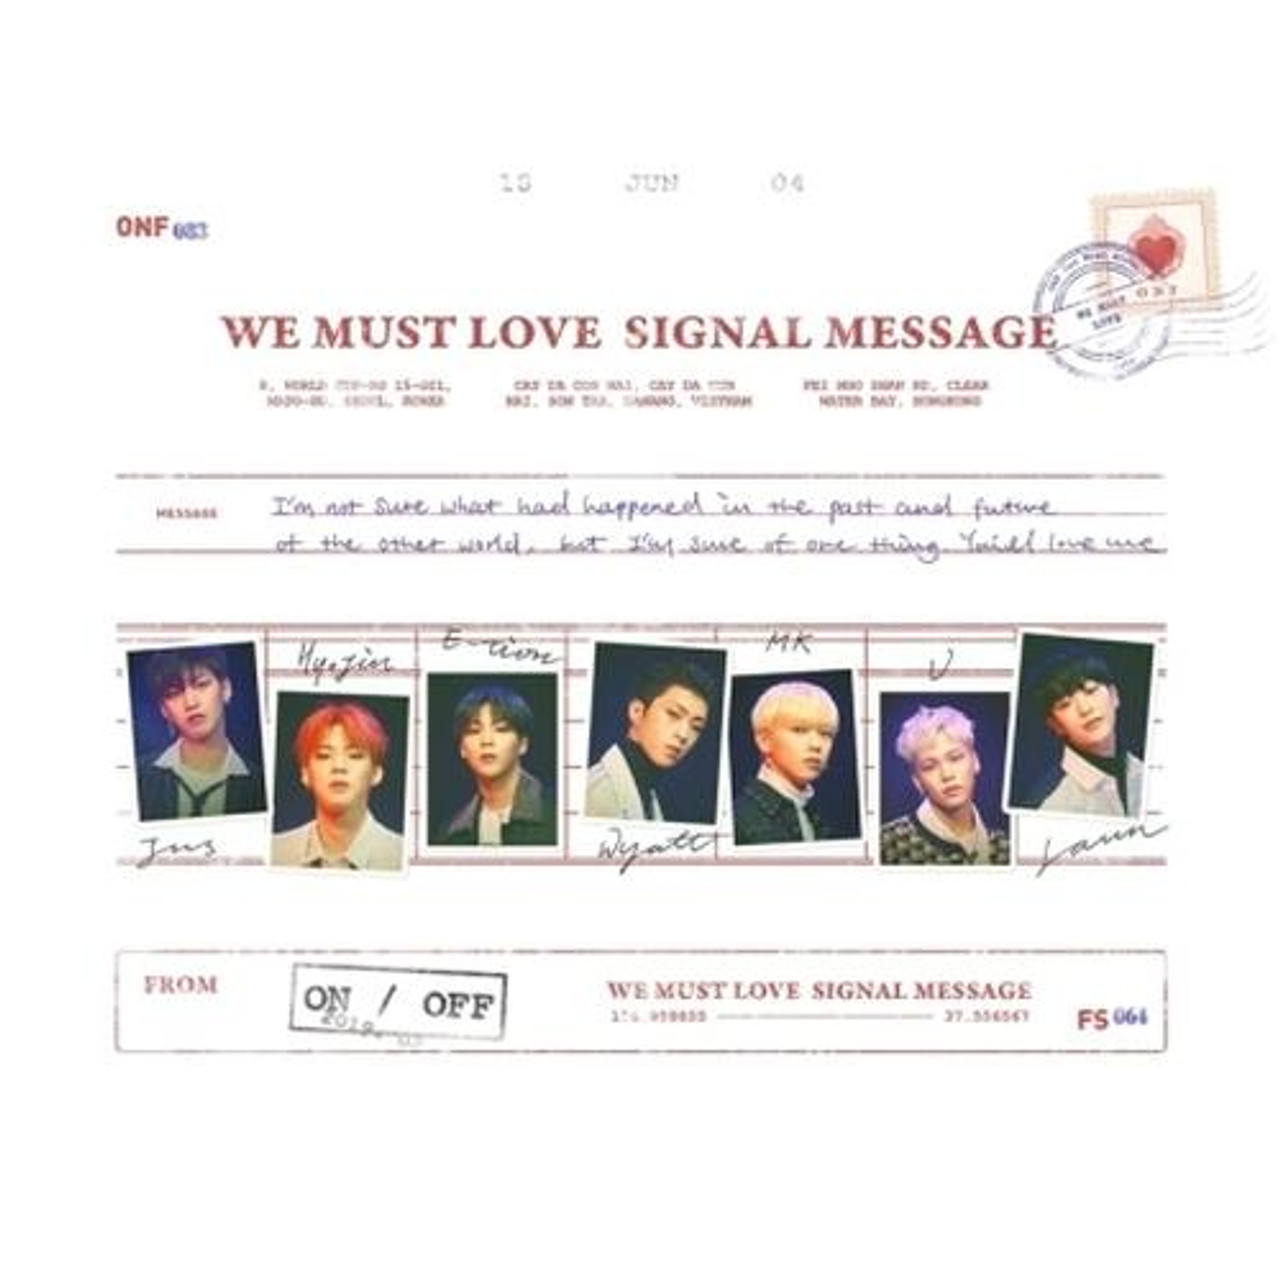 ONF - 3rd Mini [WE MUST LOVE]